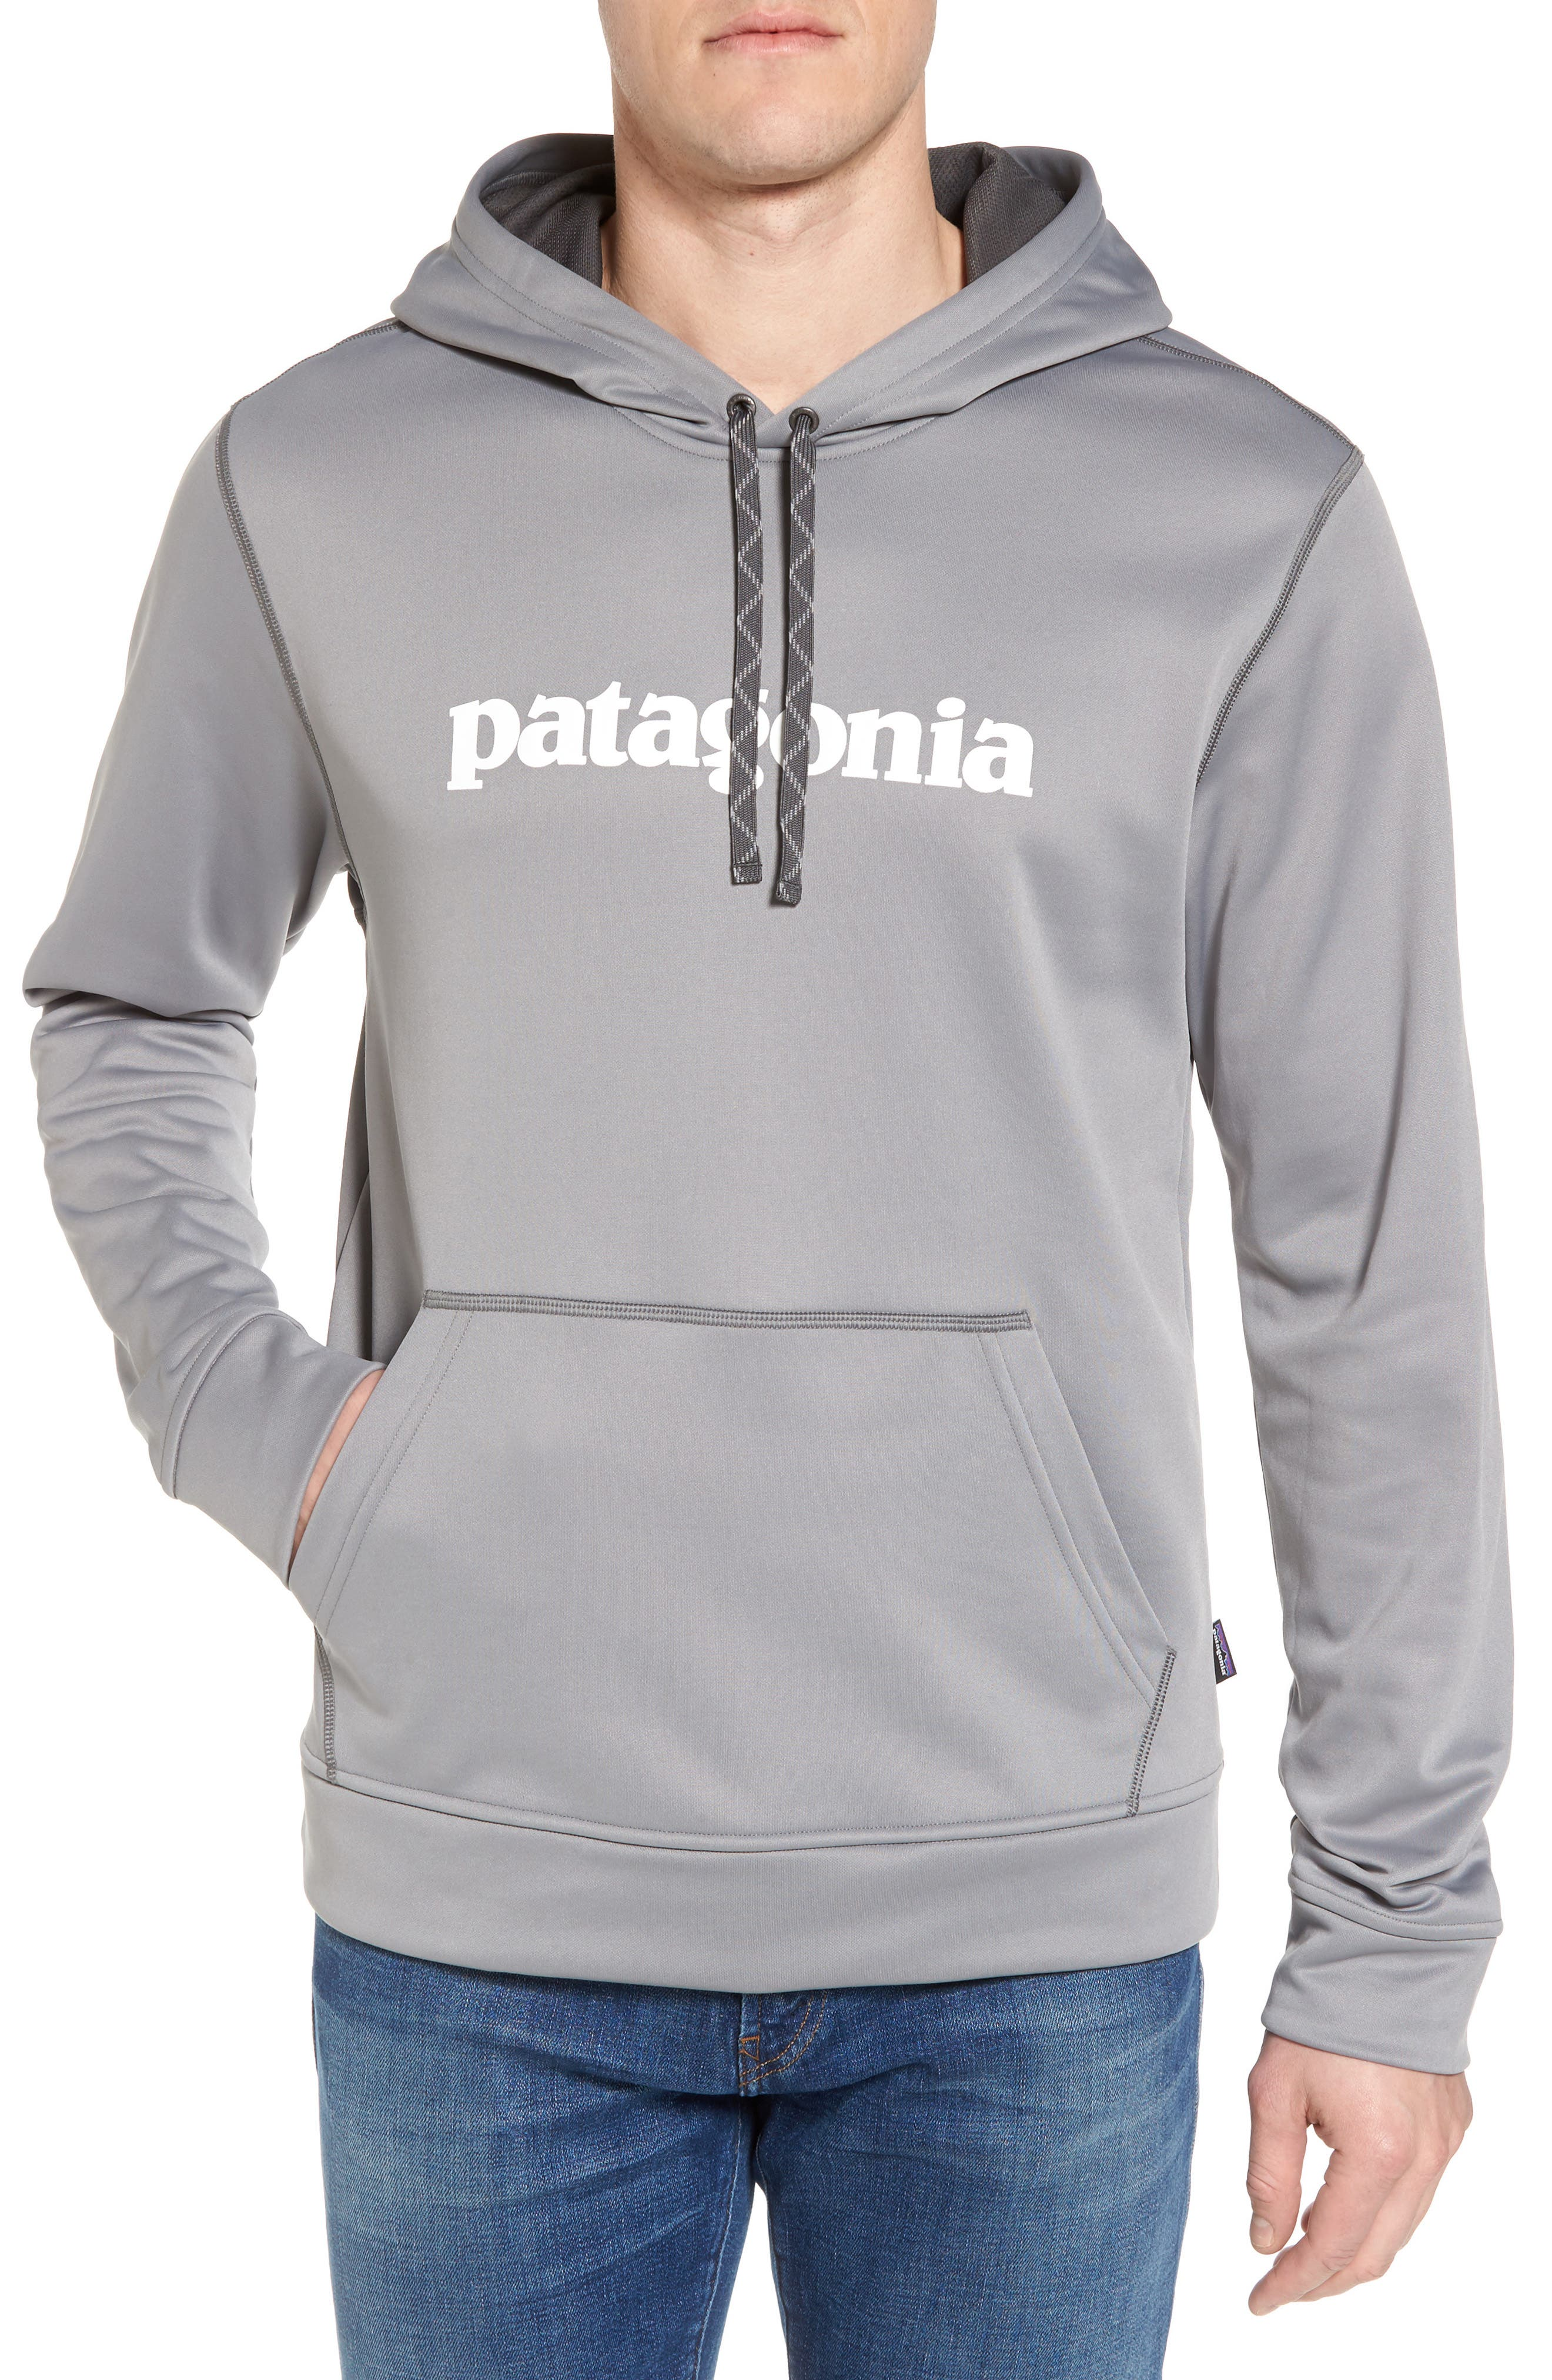 Polycycle Hoodie,                         Main,                         color, Feather Grey/ White